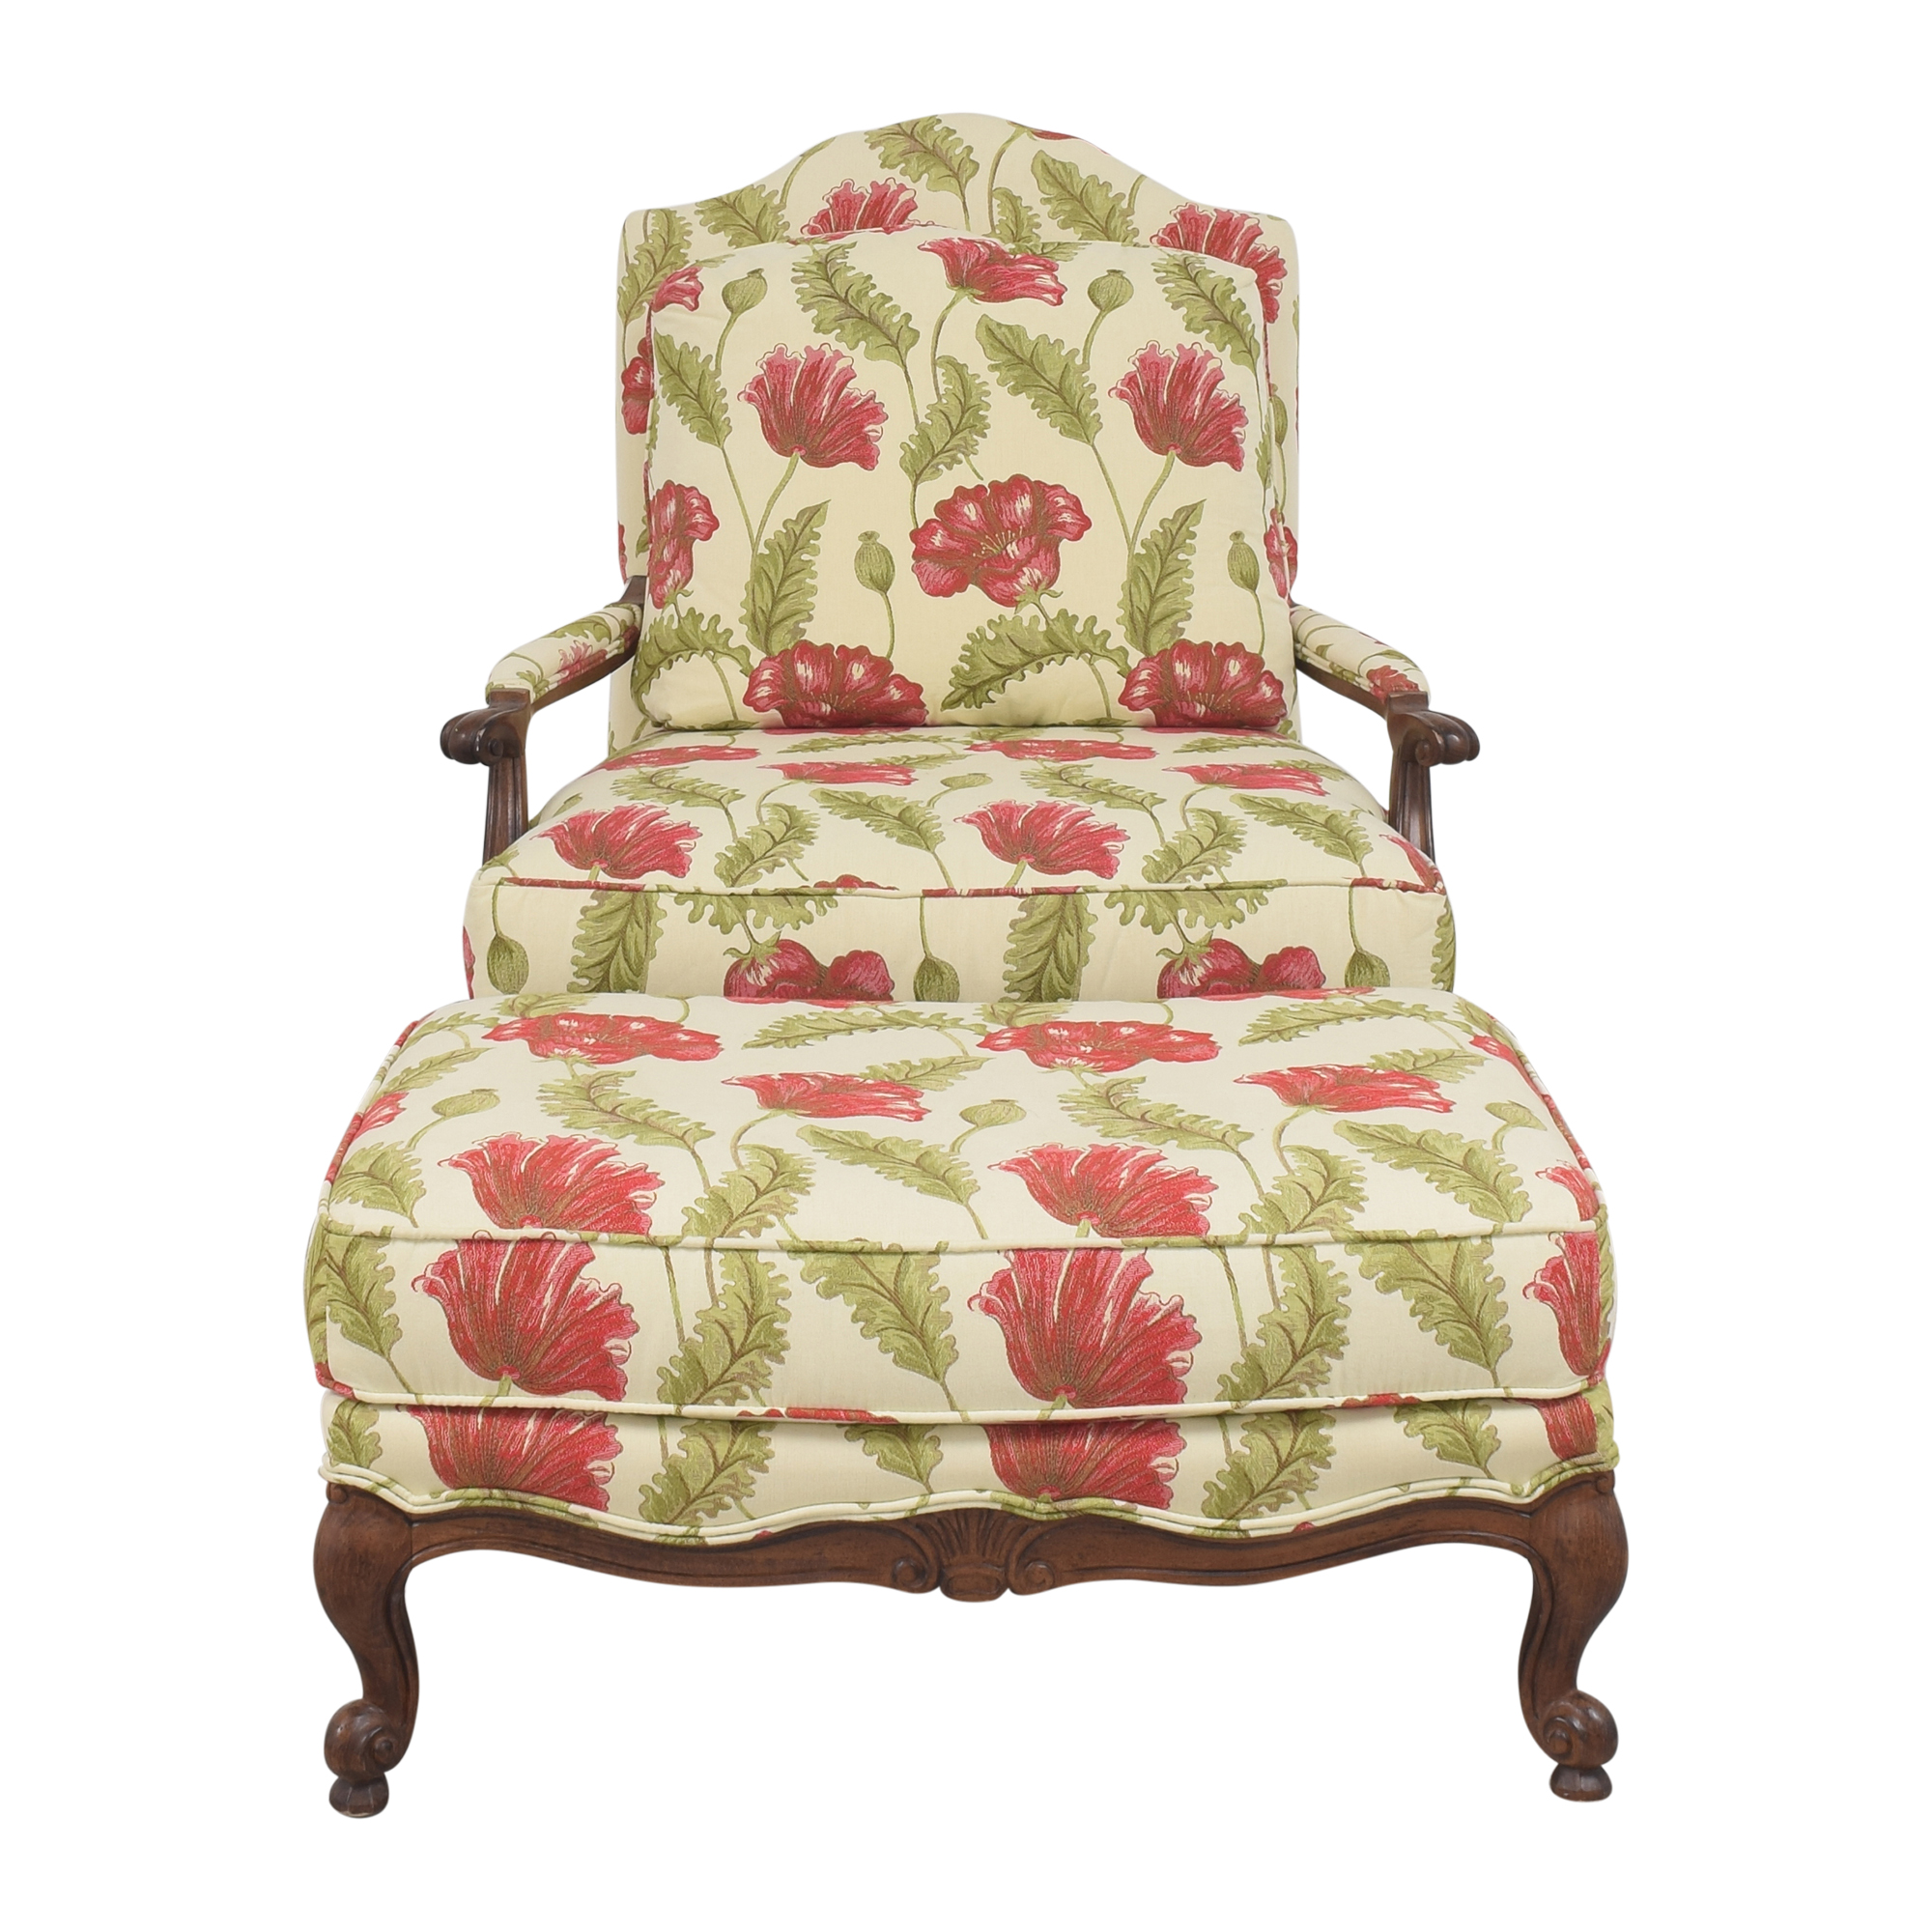 Clayton Marcus Floral Chair with Ottoman sale